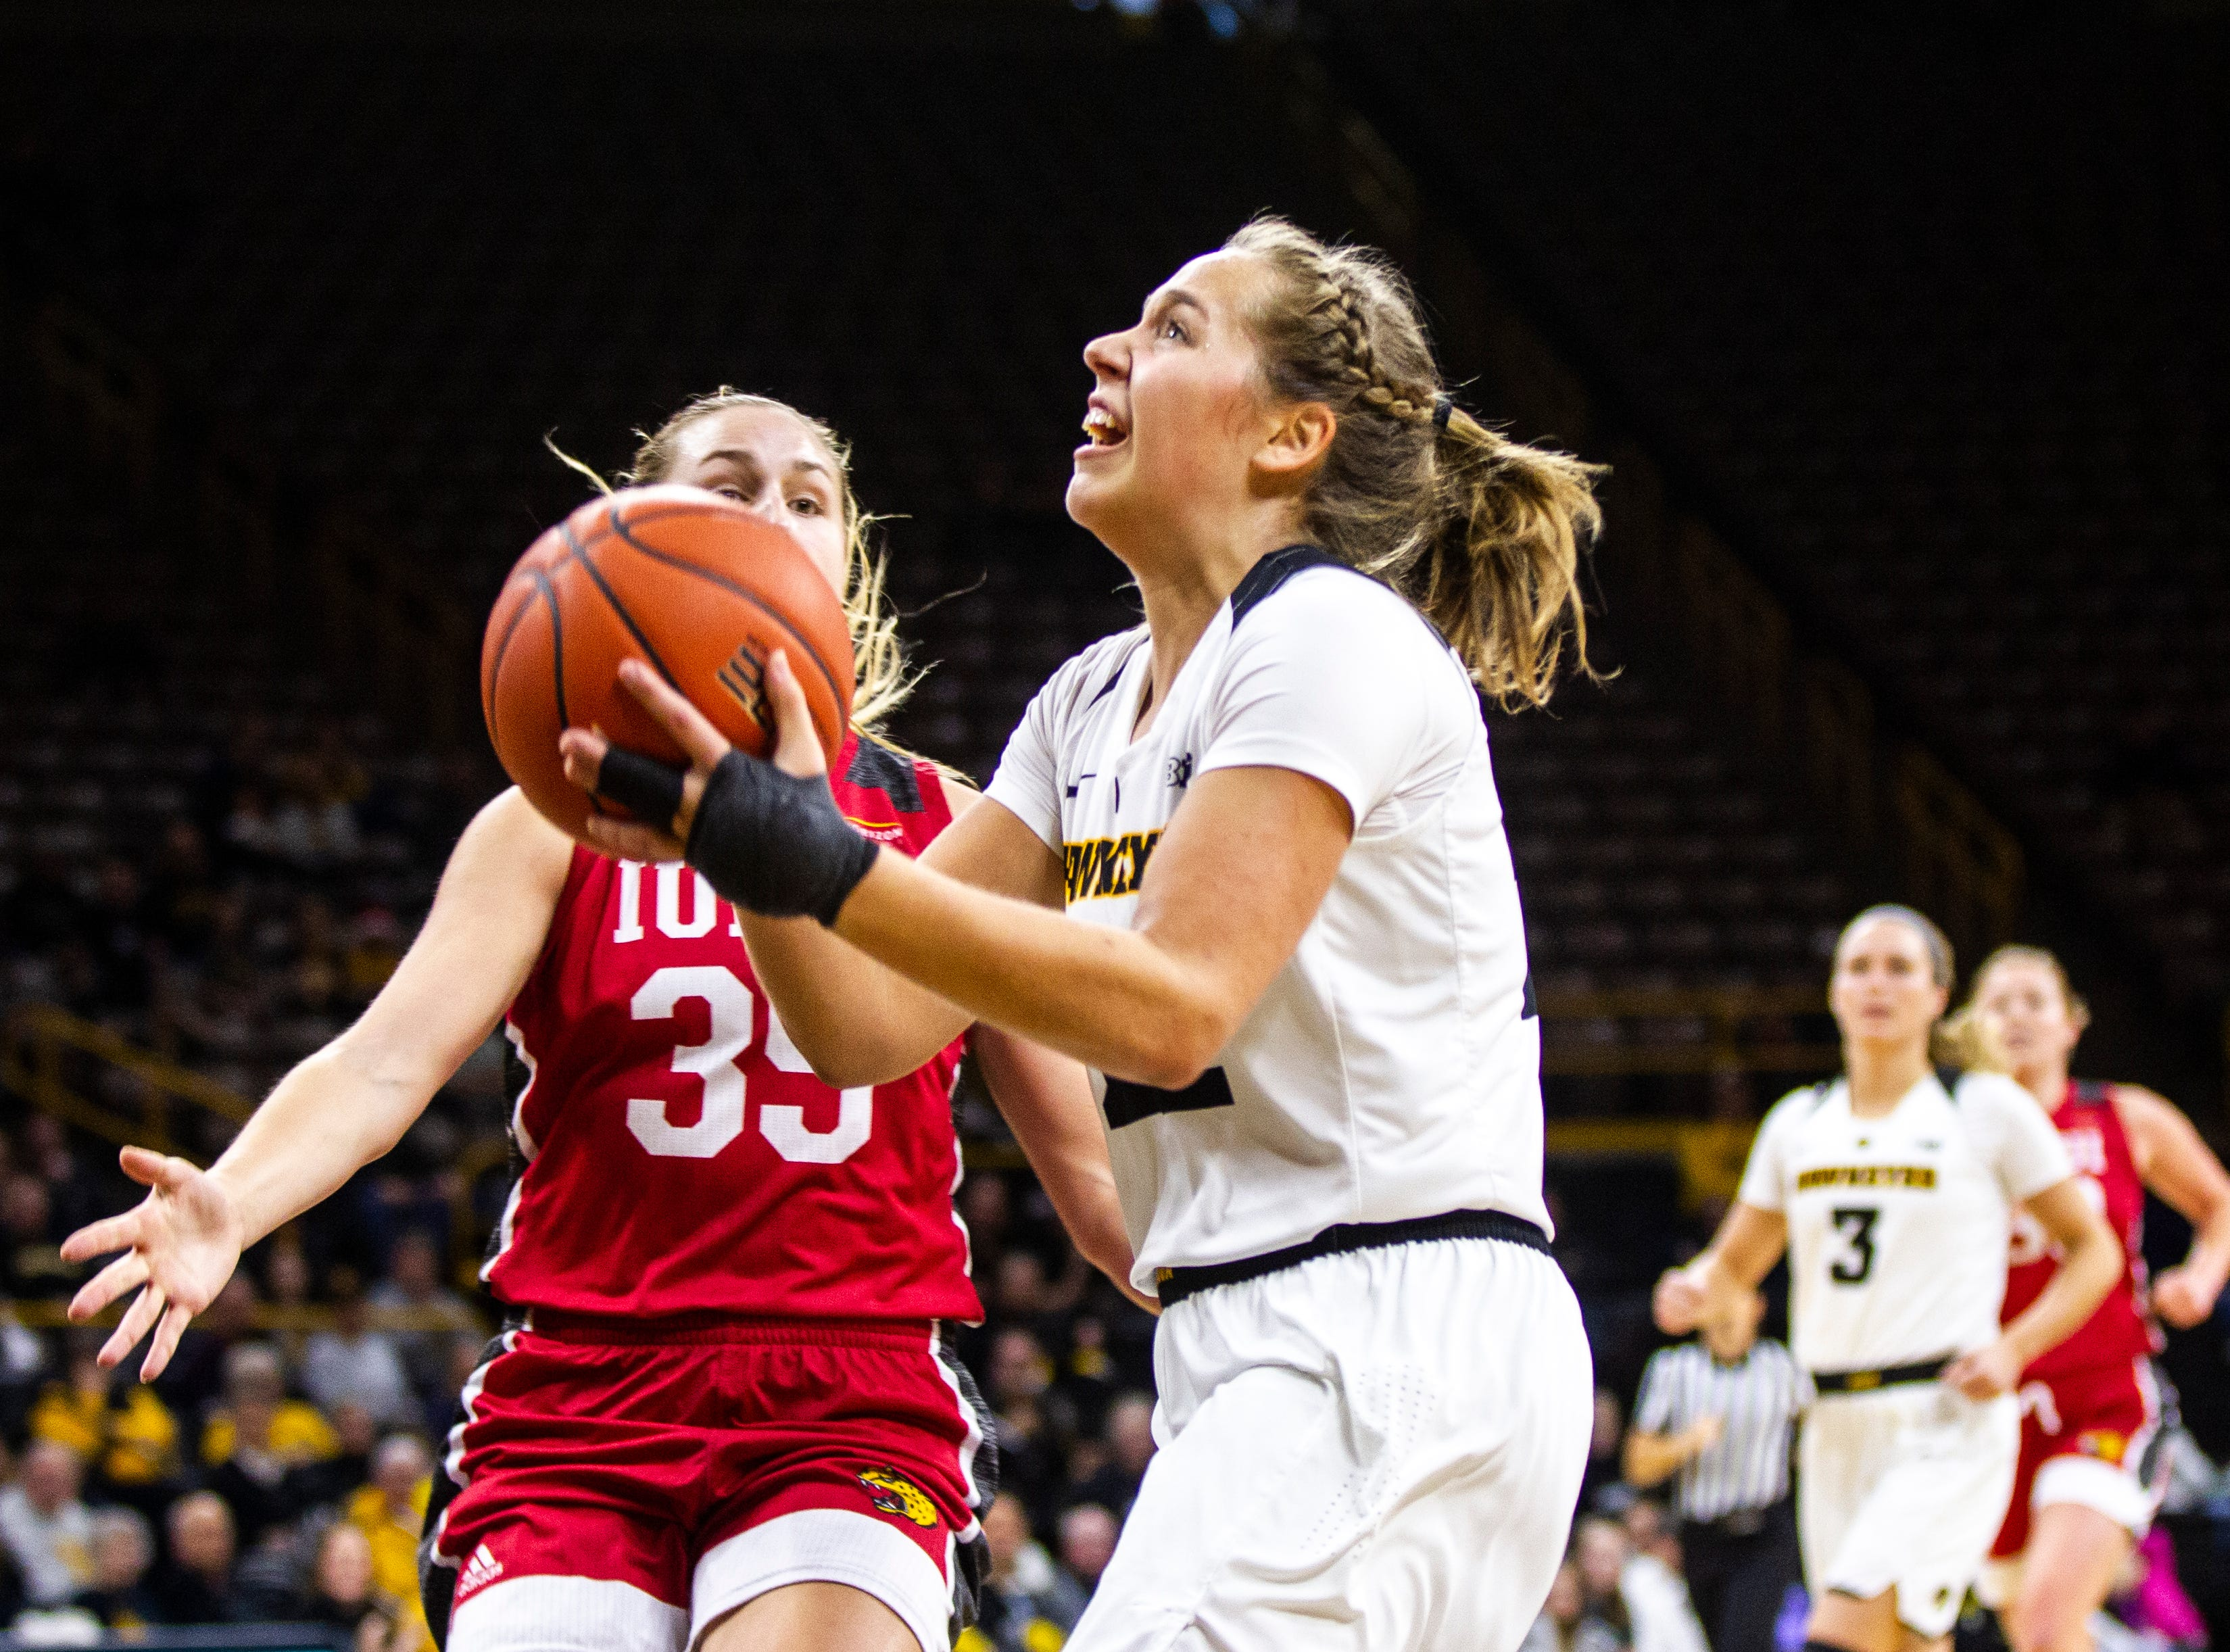 Iowa guard Kathleen Doyle (22) attempts a basket during a NCAA women's basketball game on Saturday, Dec. 8, 2018, at Carver-Hawkeye Arena in Iowa City.